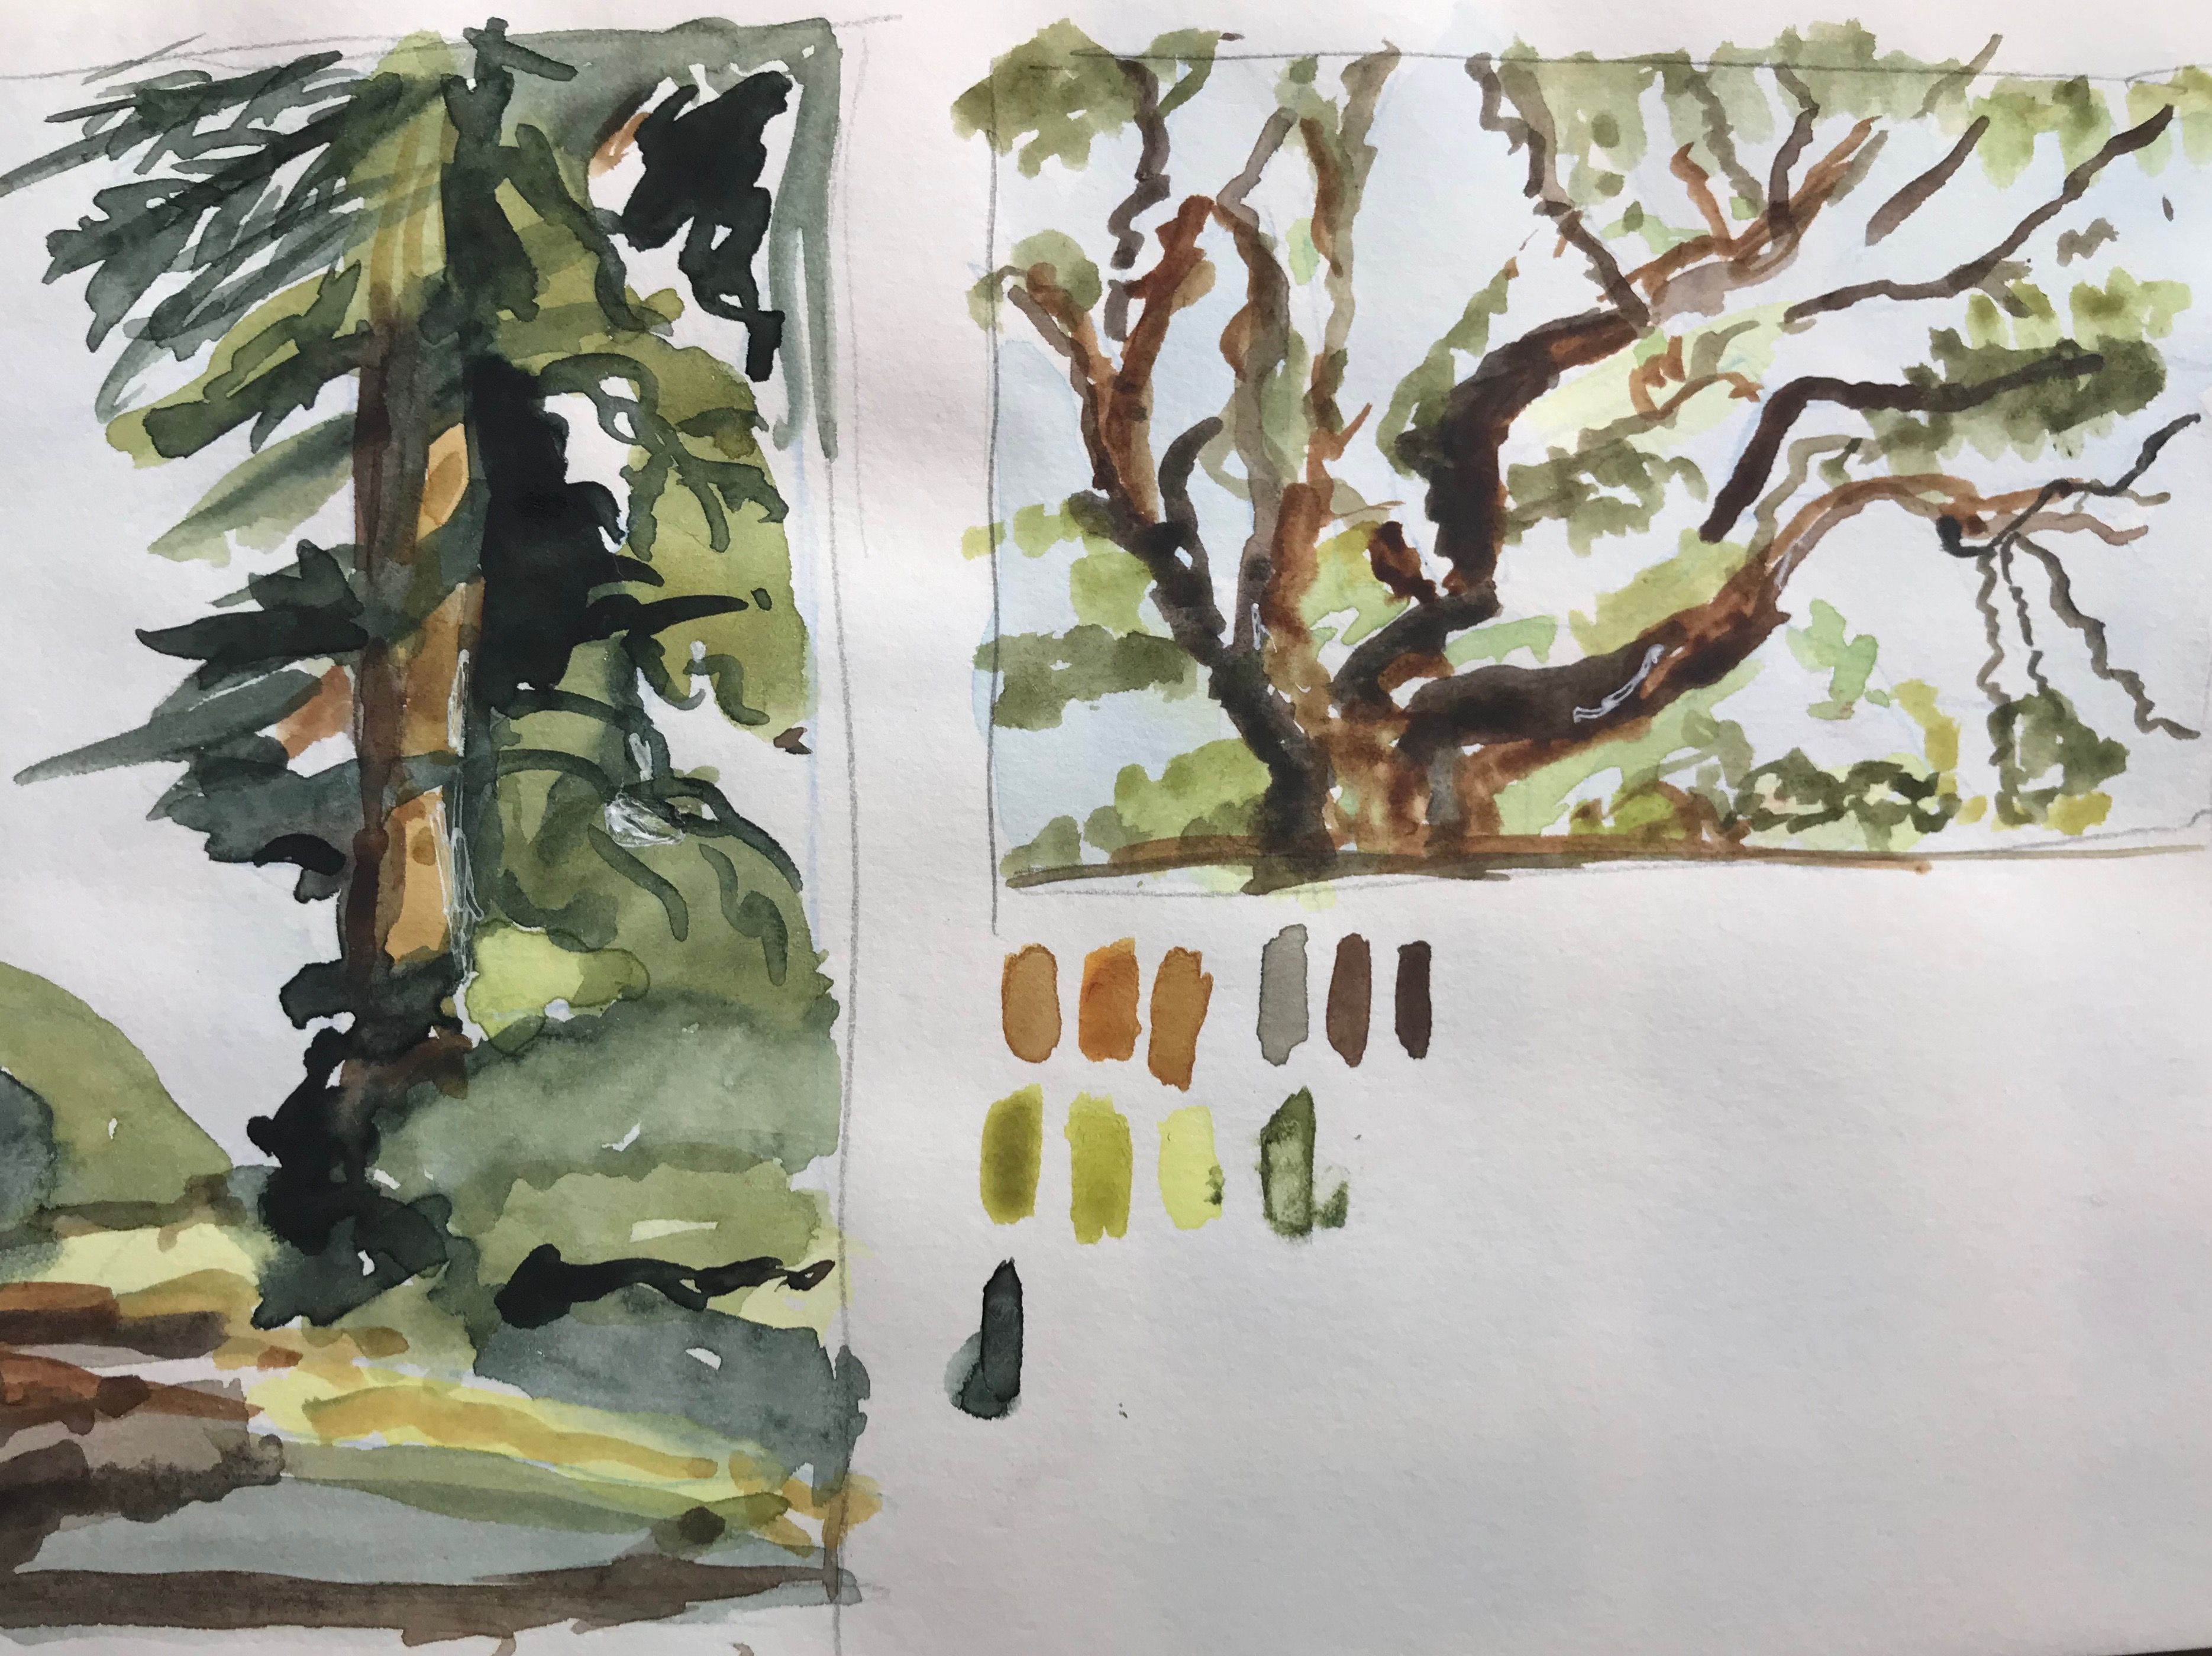 2 14 19 Second Effort At Watercolor How To Paint Trees Workshop